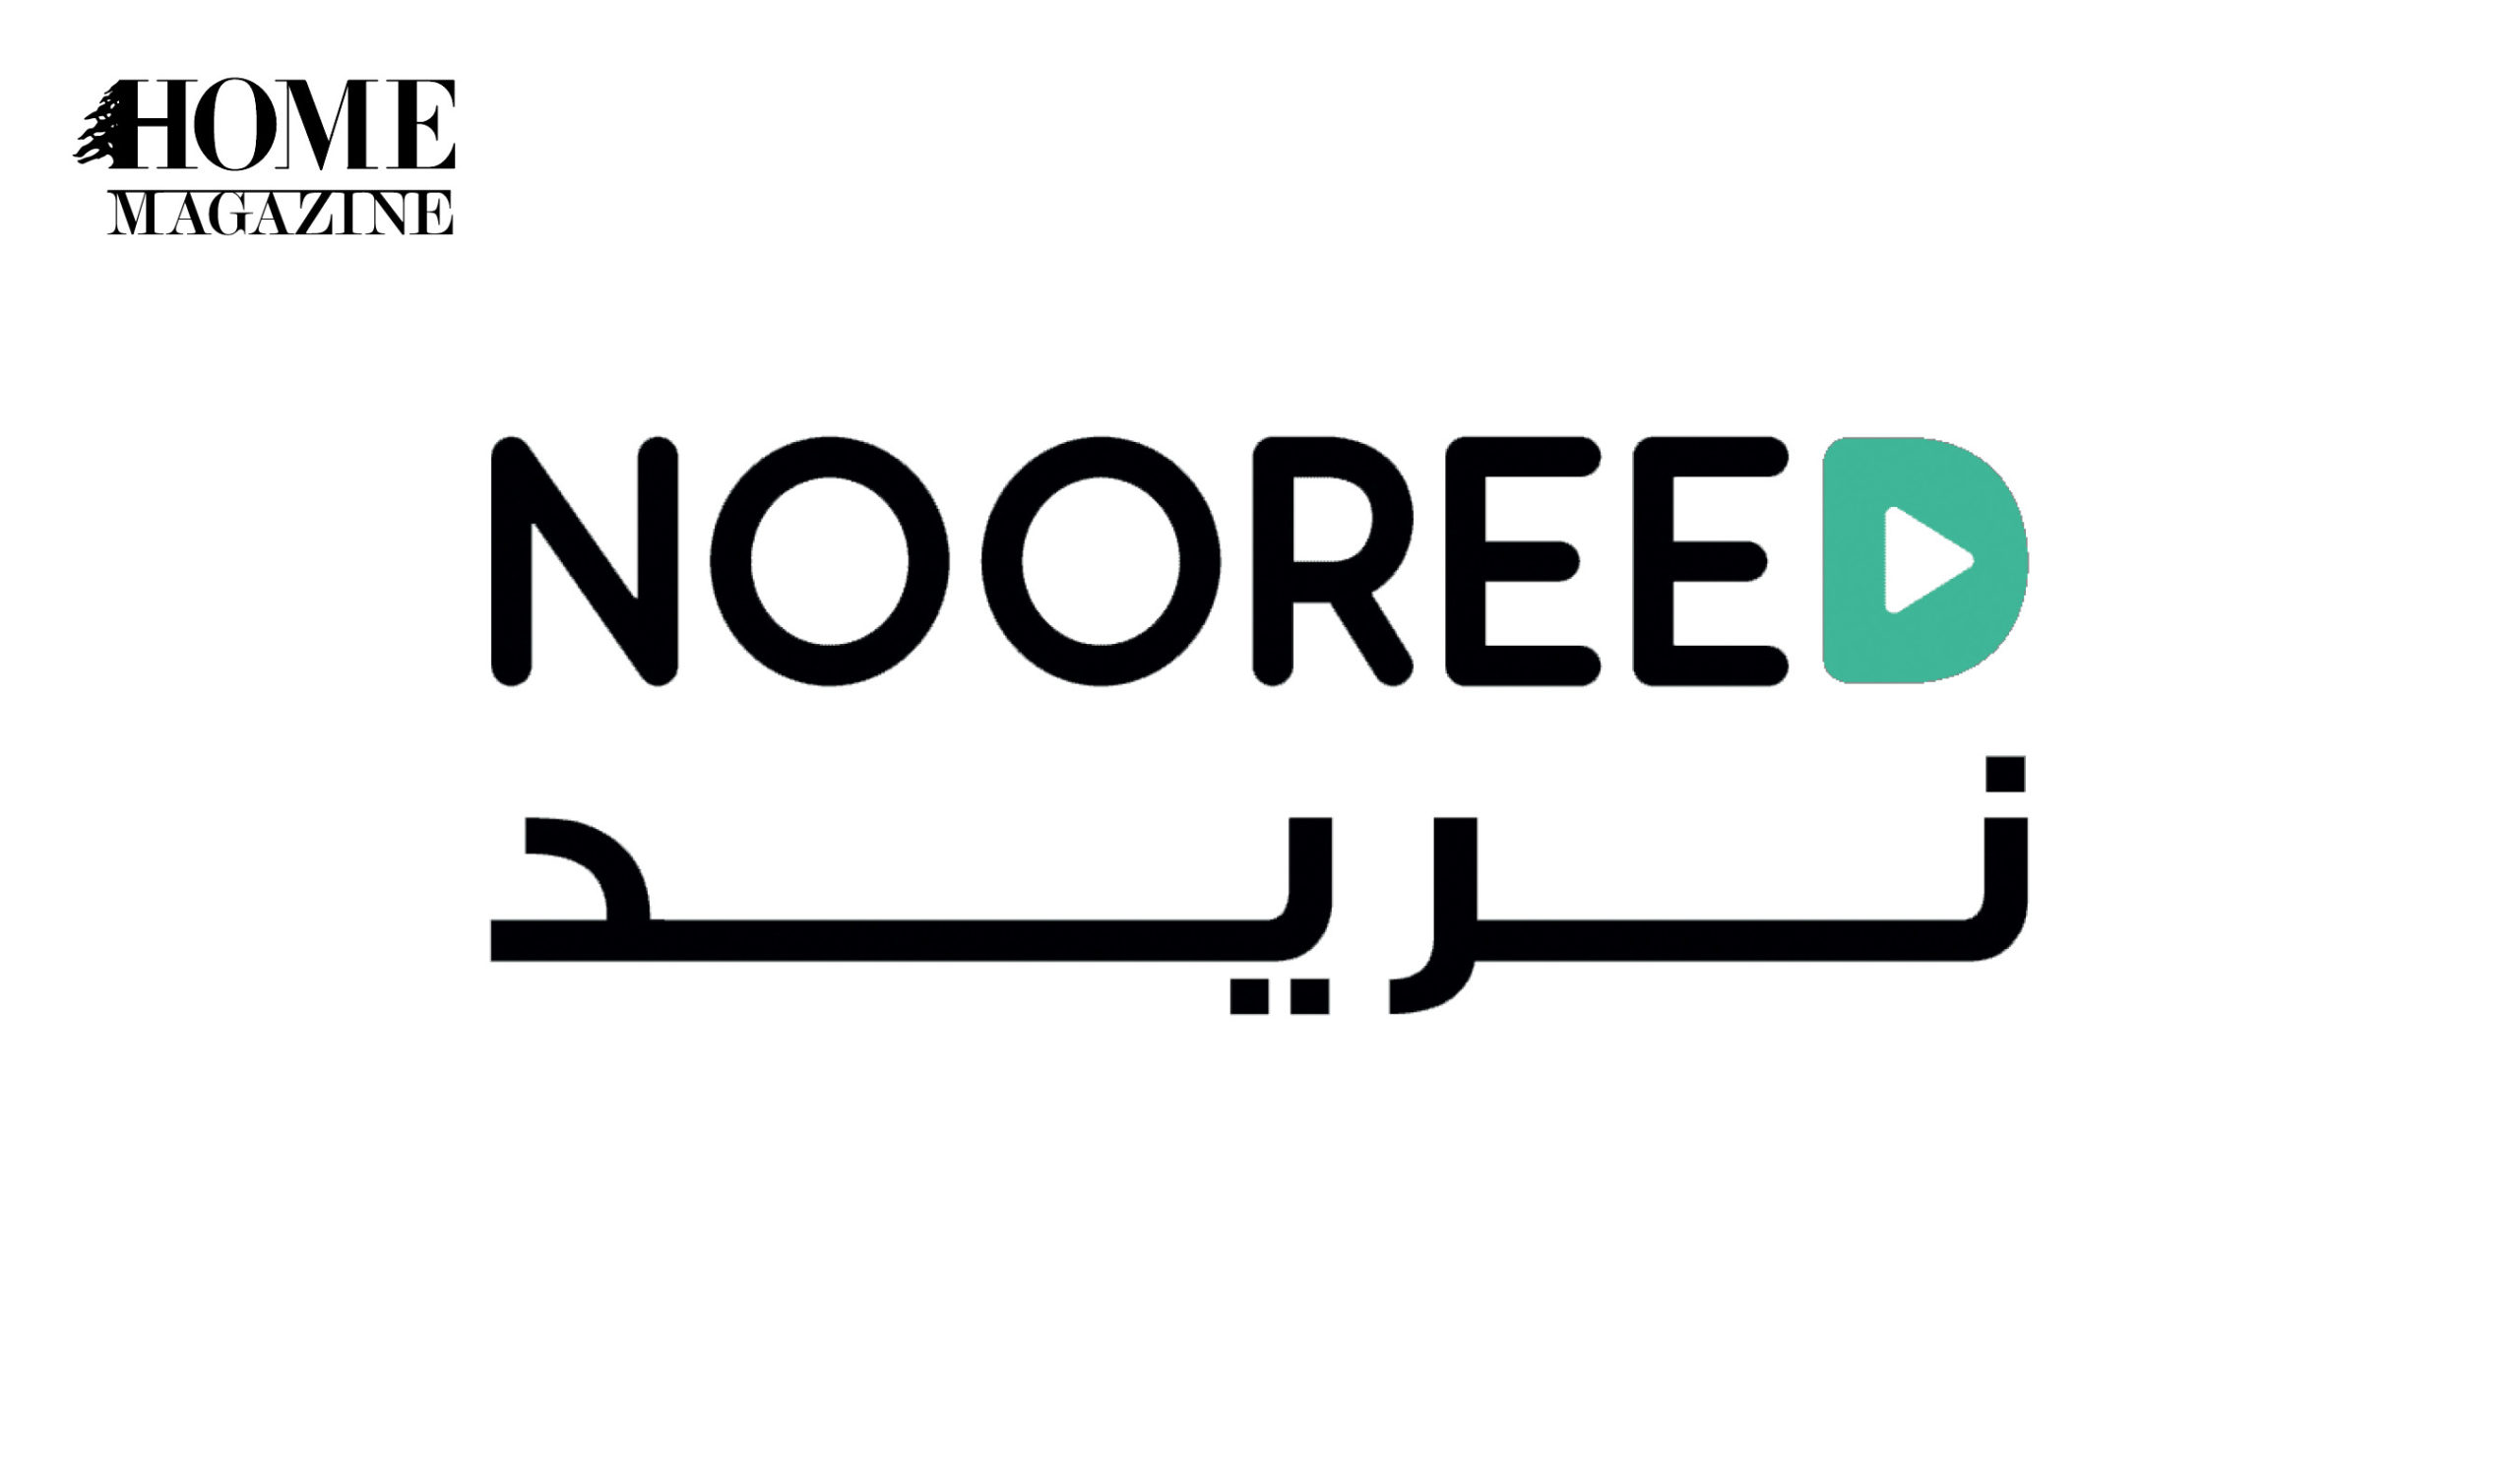 Nooreed: A Startup Improving Lebanon's Education Landscape Through Free Student Orientation